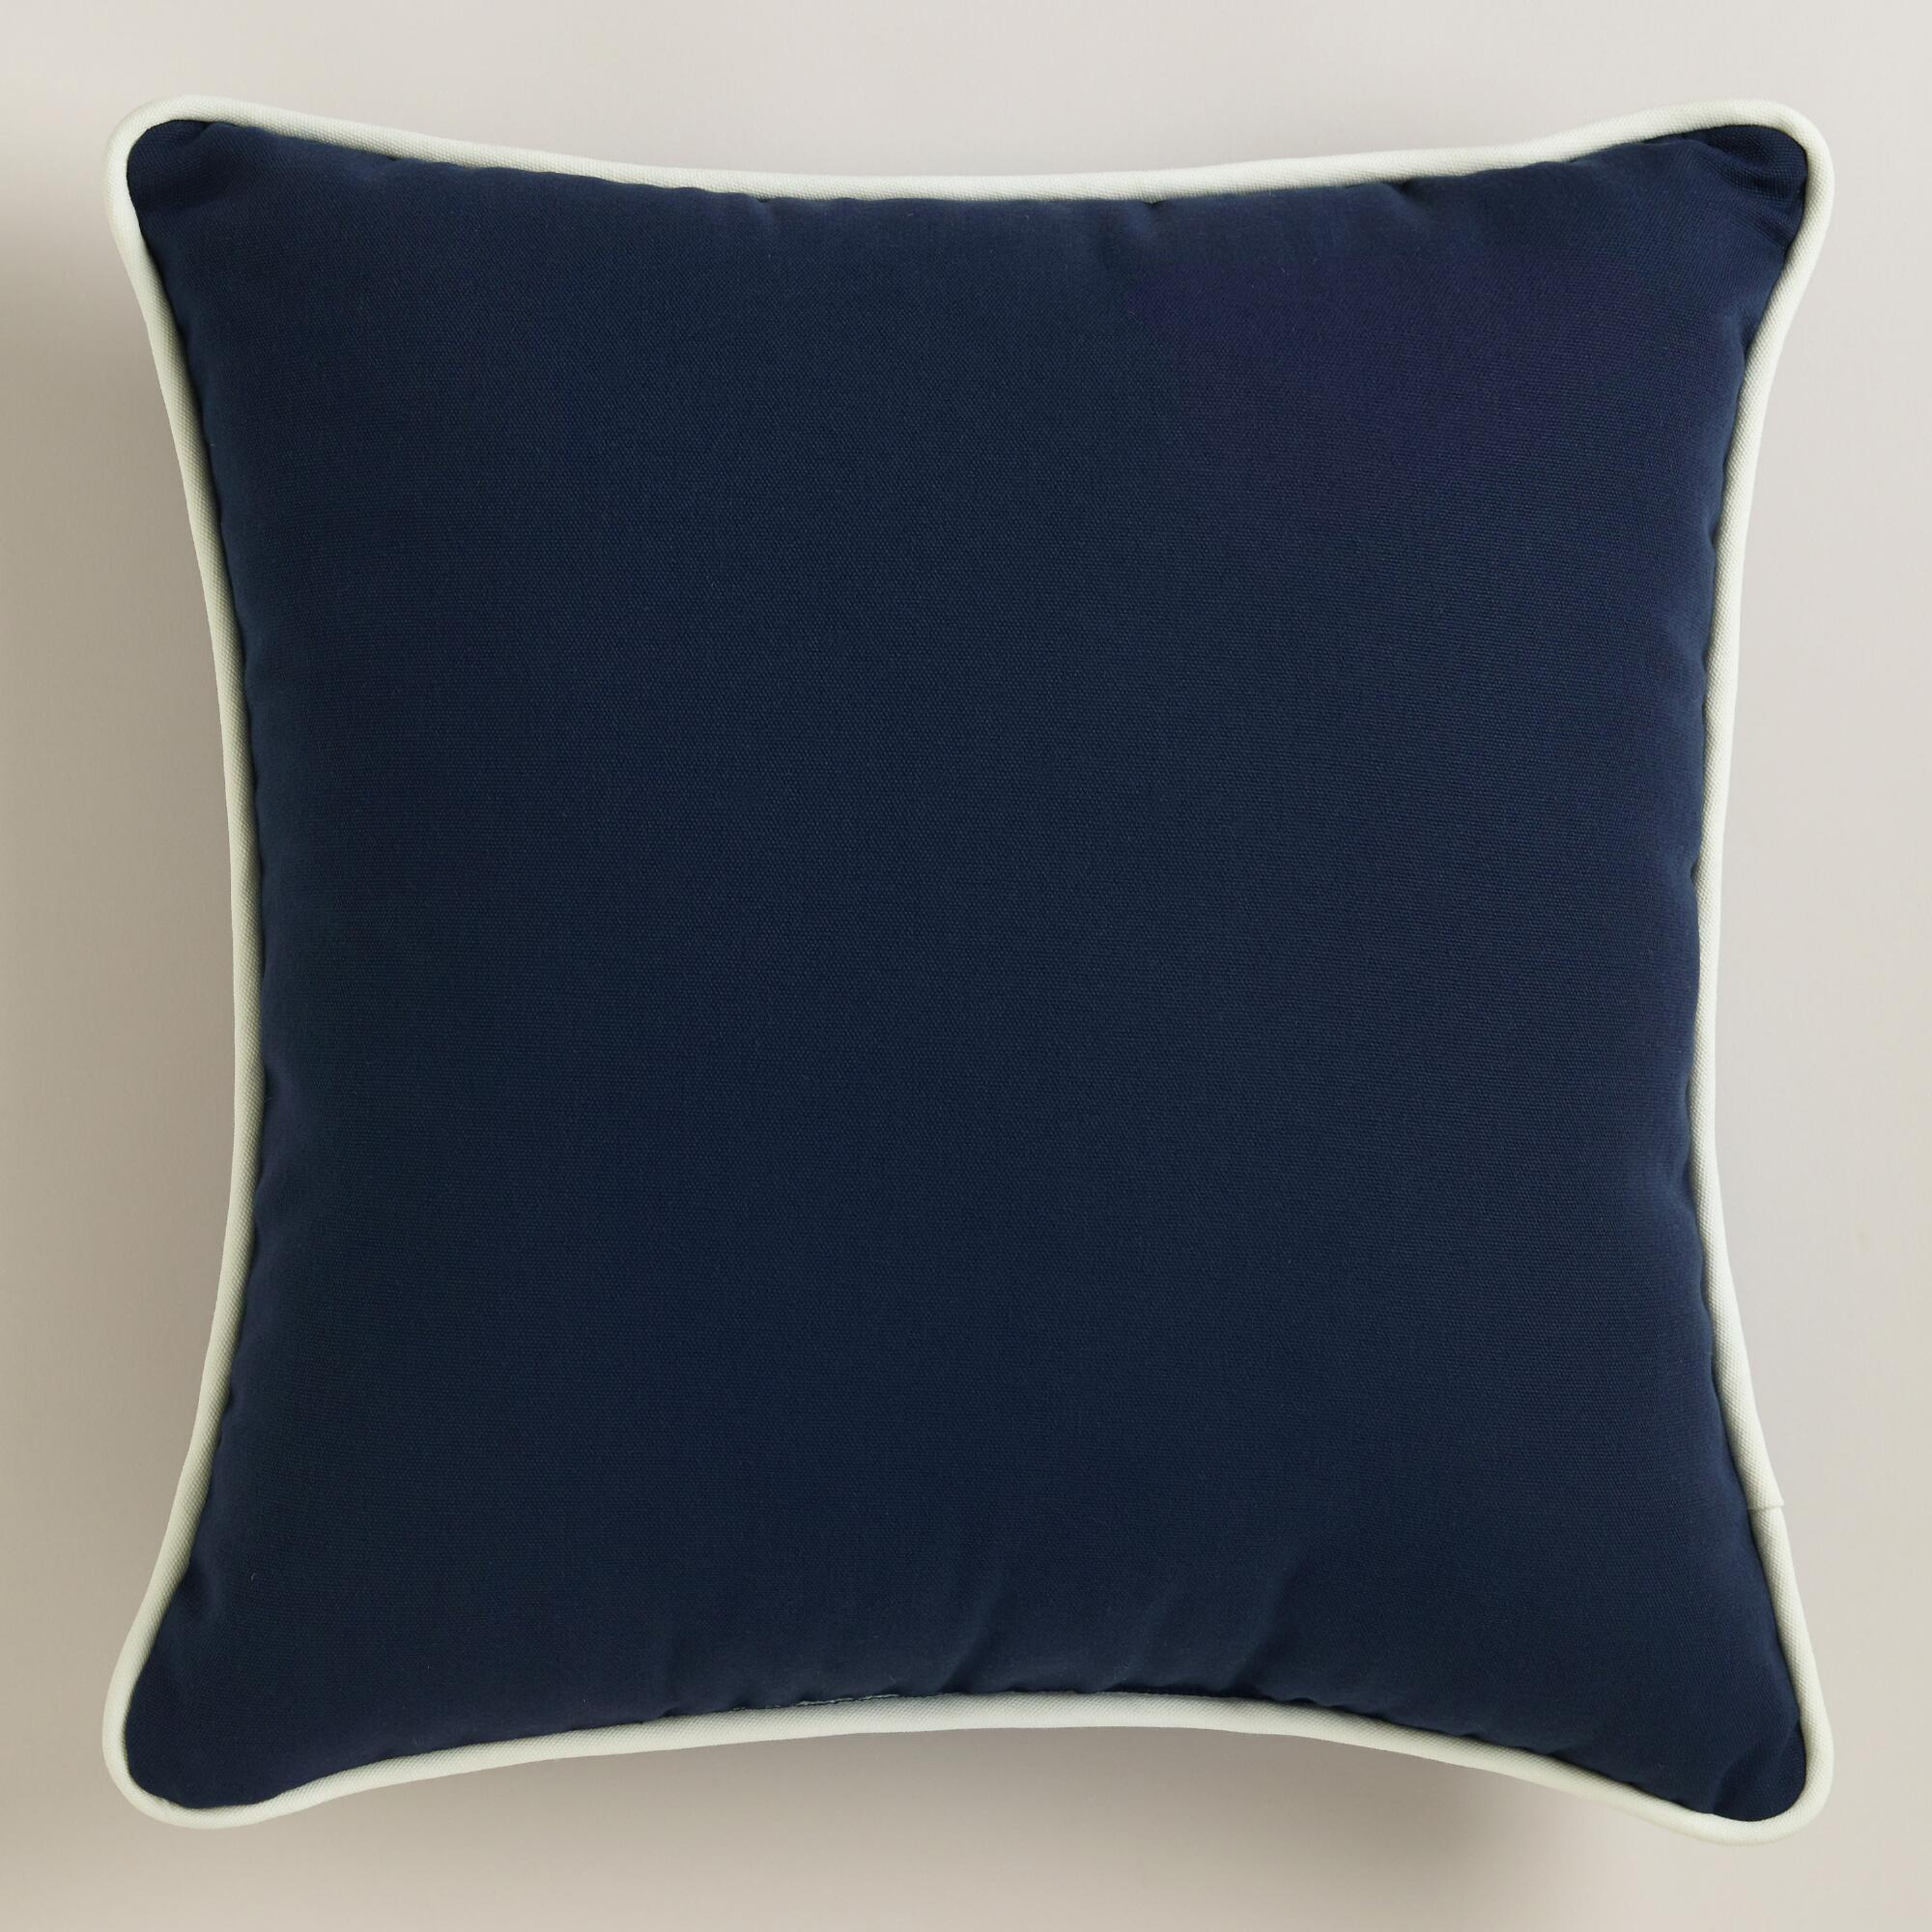 Dark Blue Outdoor Throw Pillow with Piping World Market